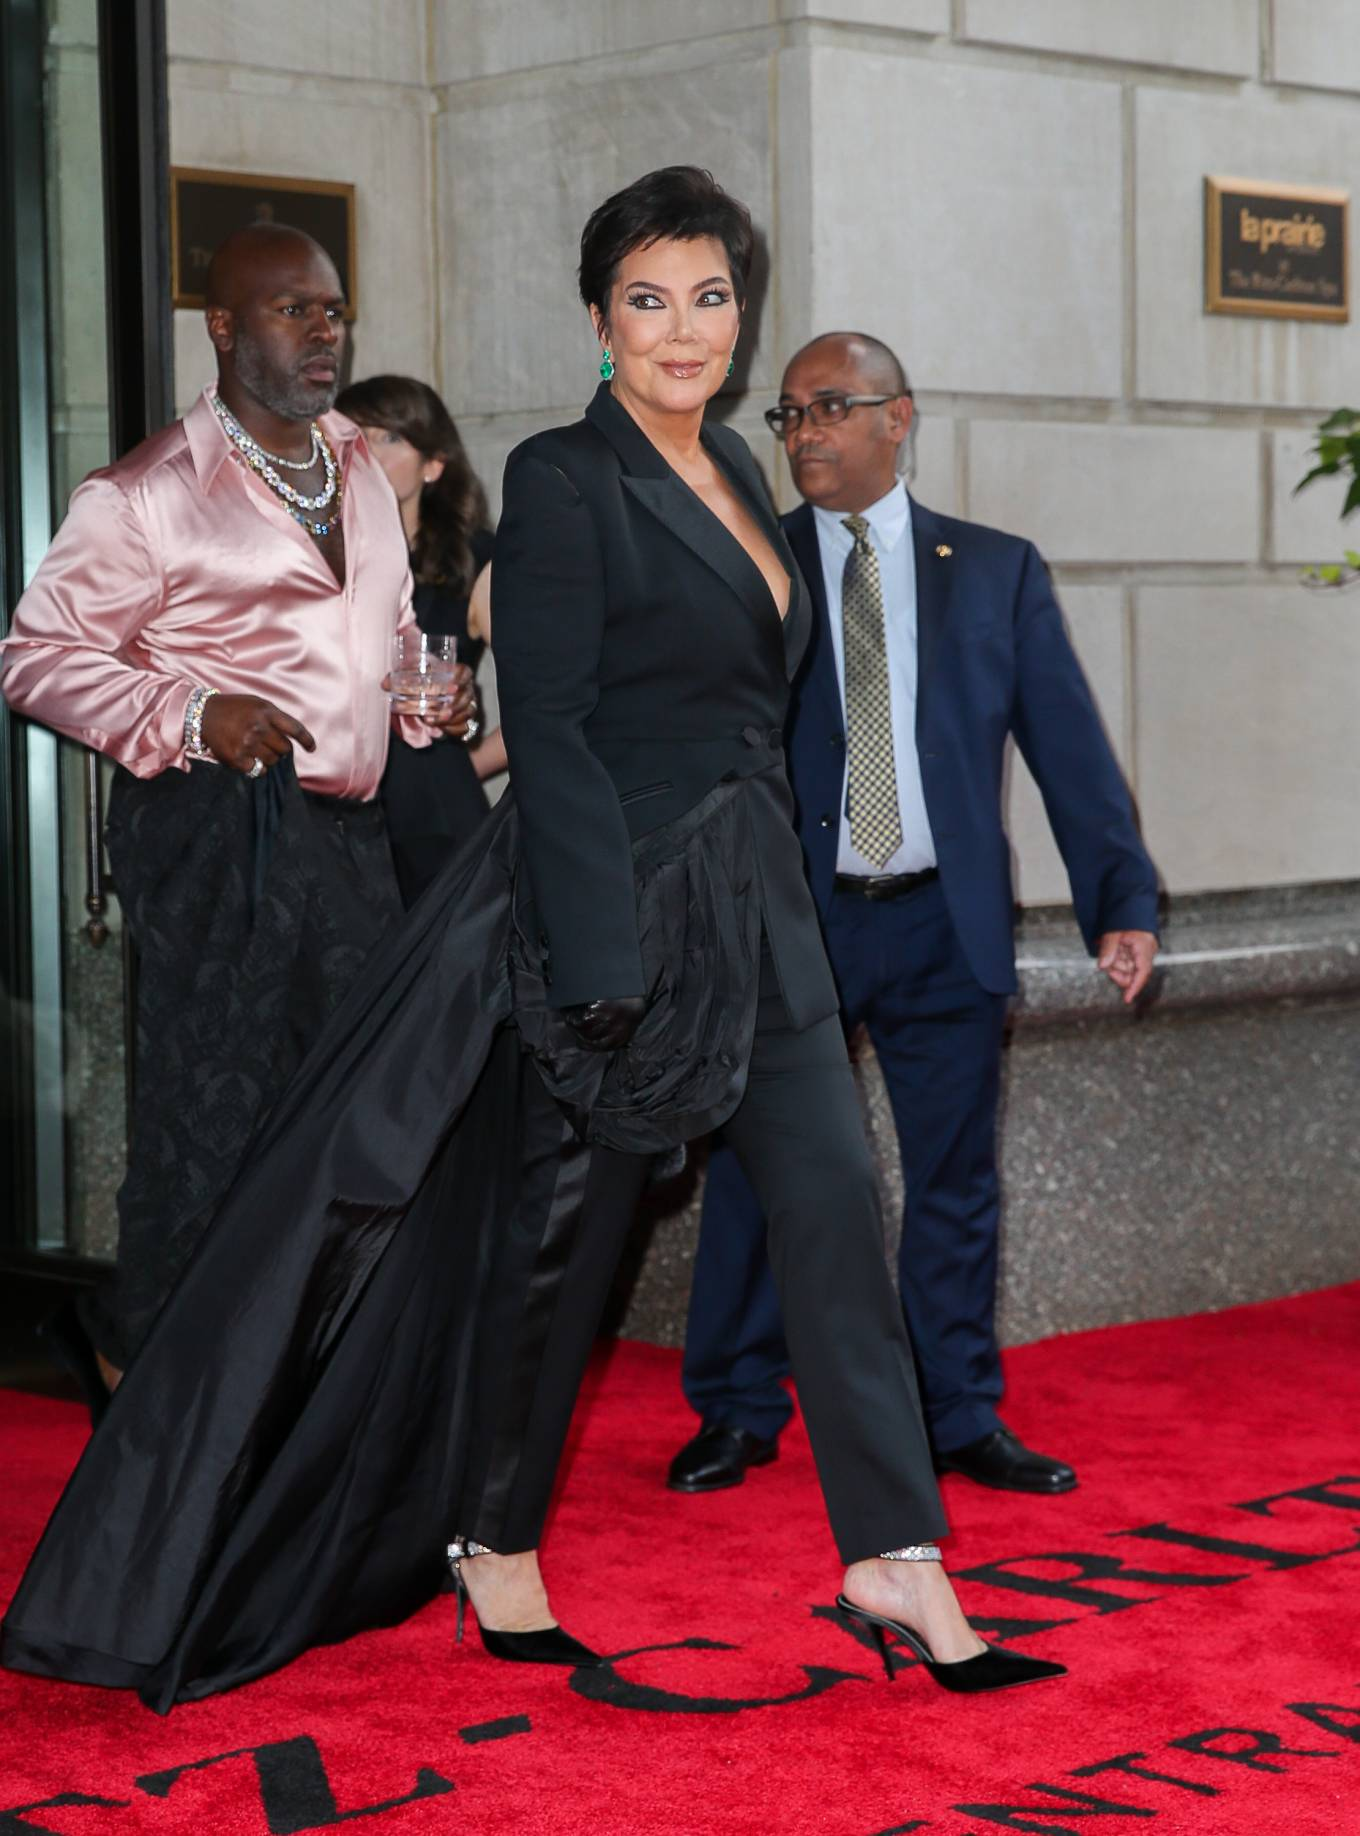 Kris Jenner - Spotted heading to The Met Gala in New York